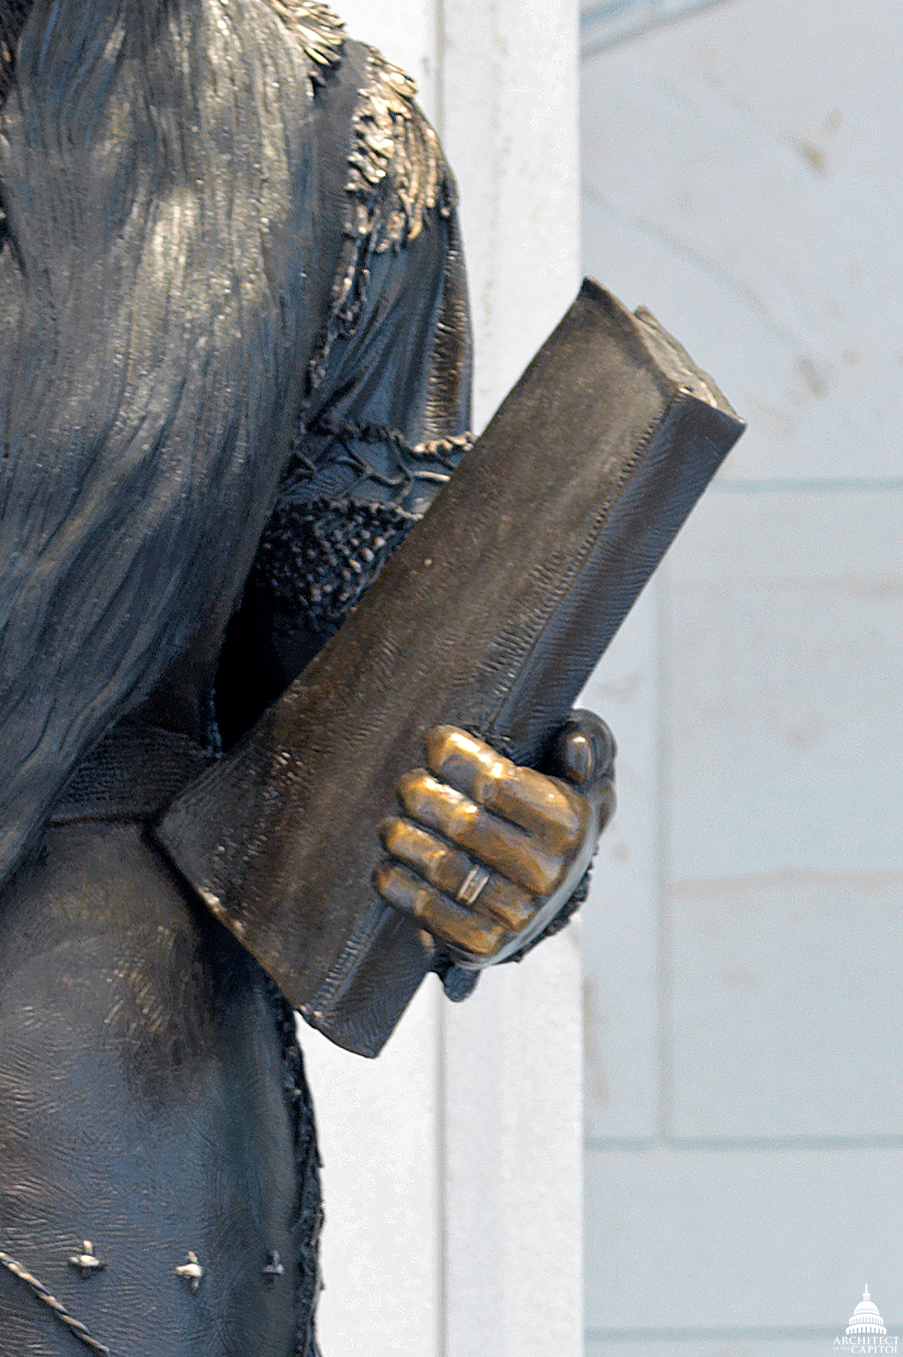 Detail of the book of Sarah Winnemucca's statue.